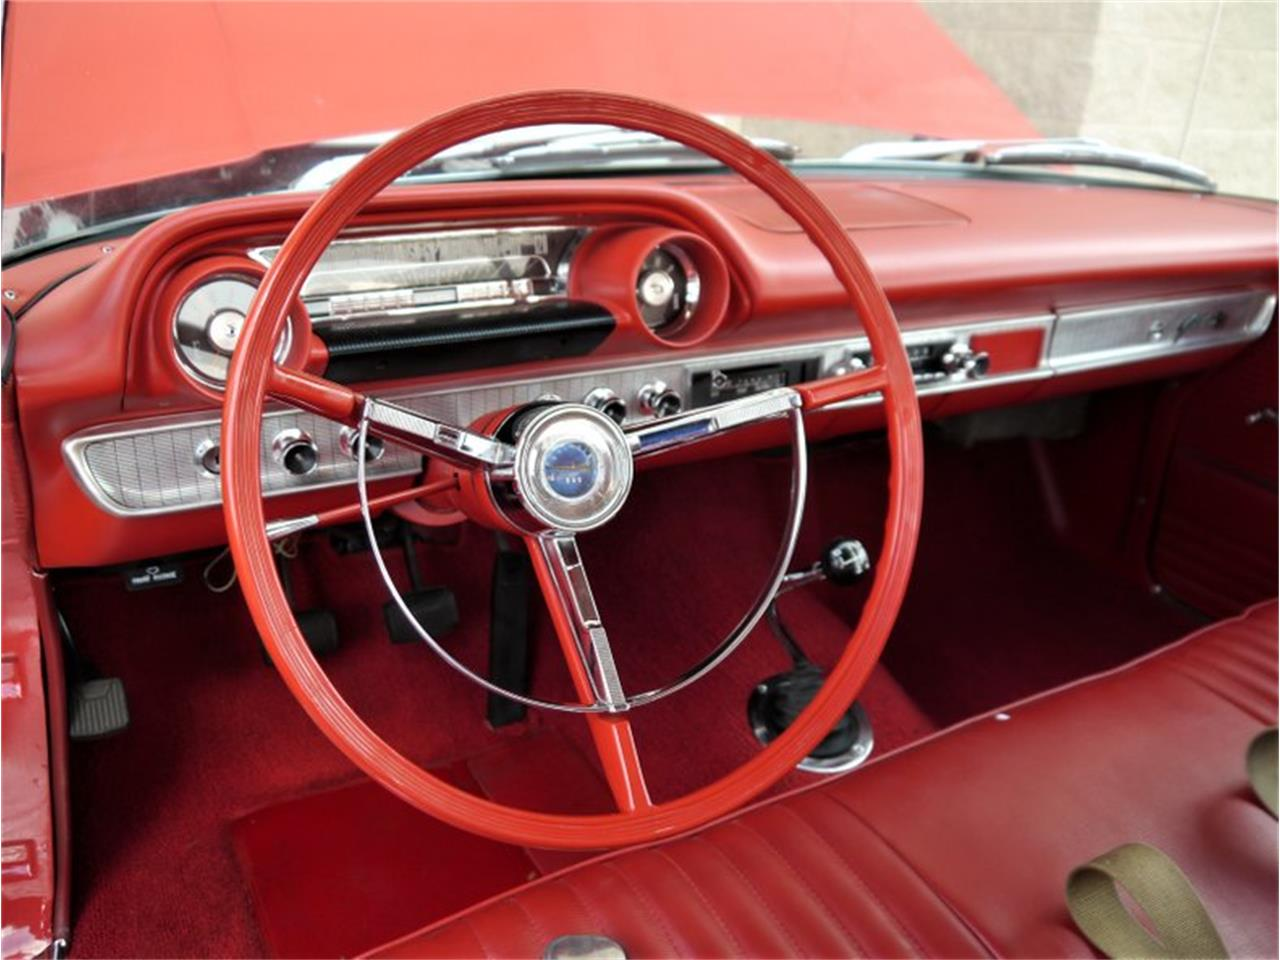 1963 Ford Galaxie 500 for sale in Alsip, IL – photo 73